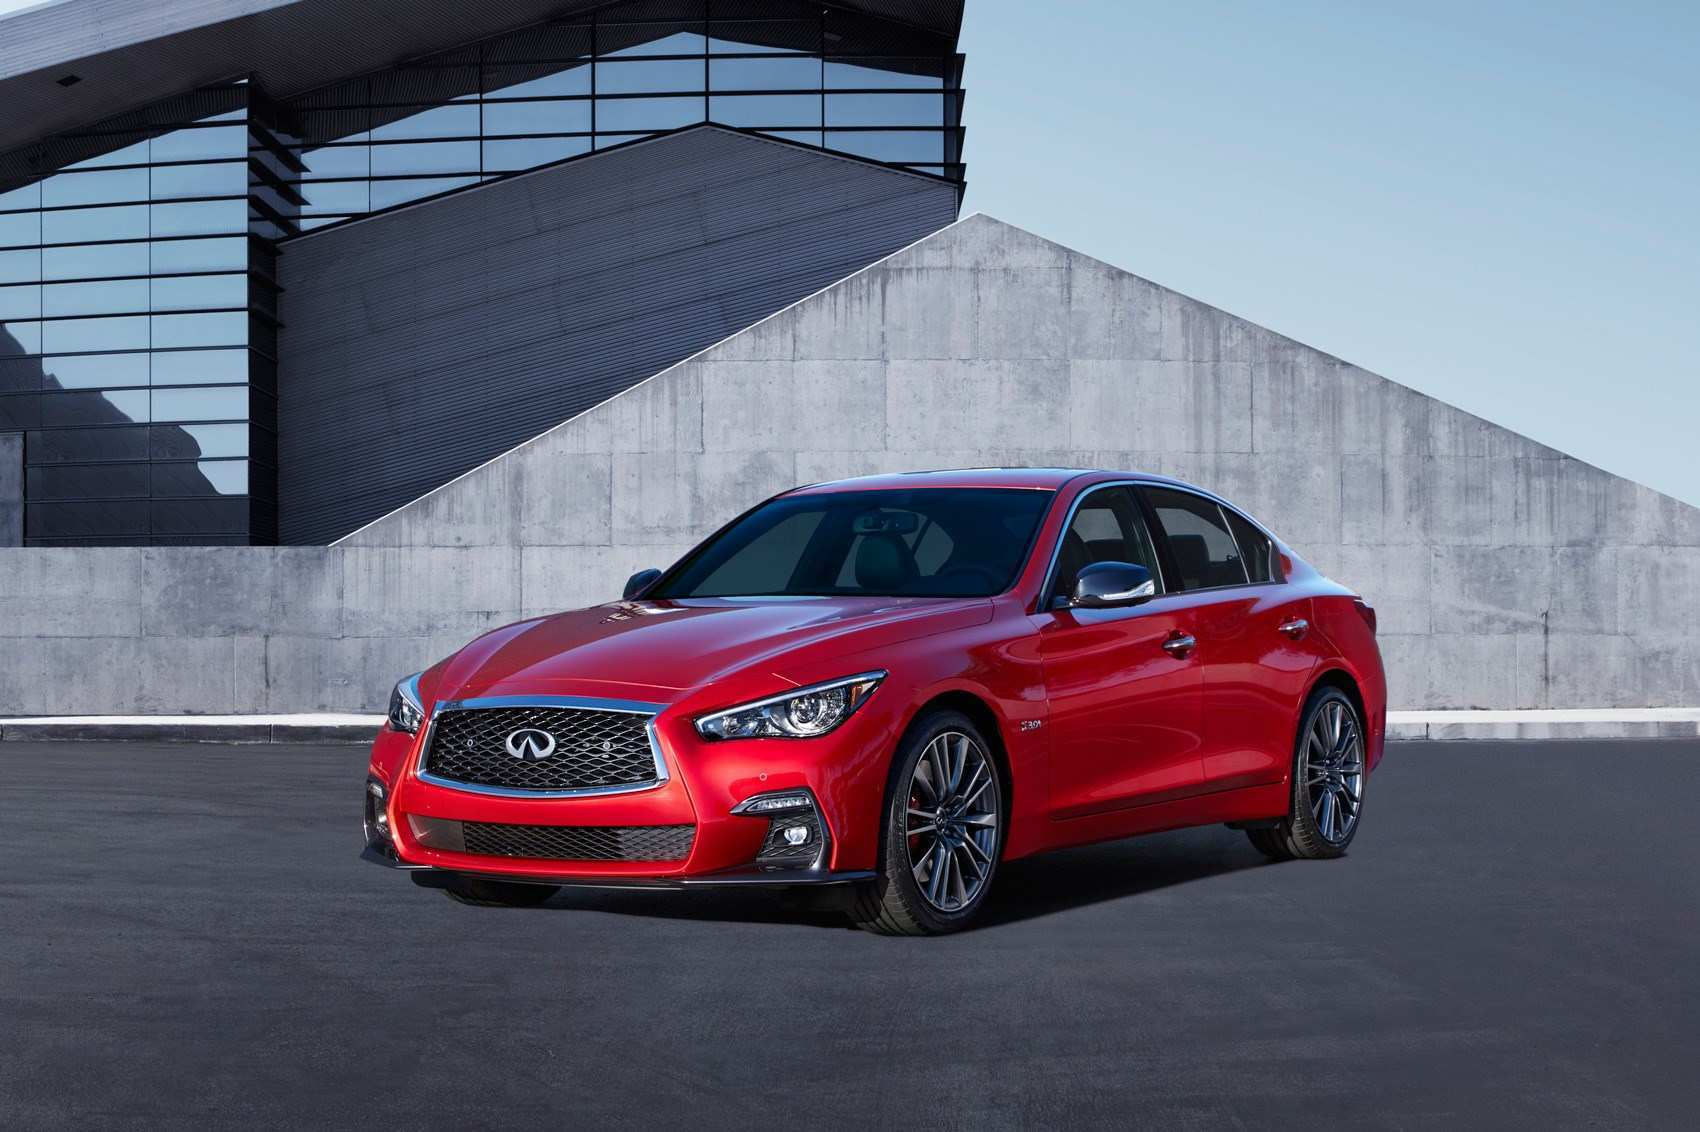 39 New Infiniti Cars For 2020 Prices